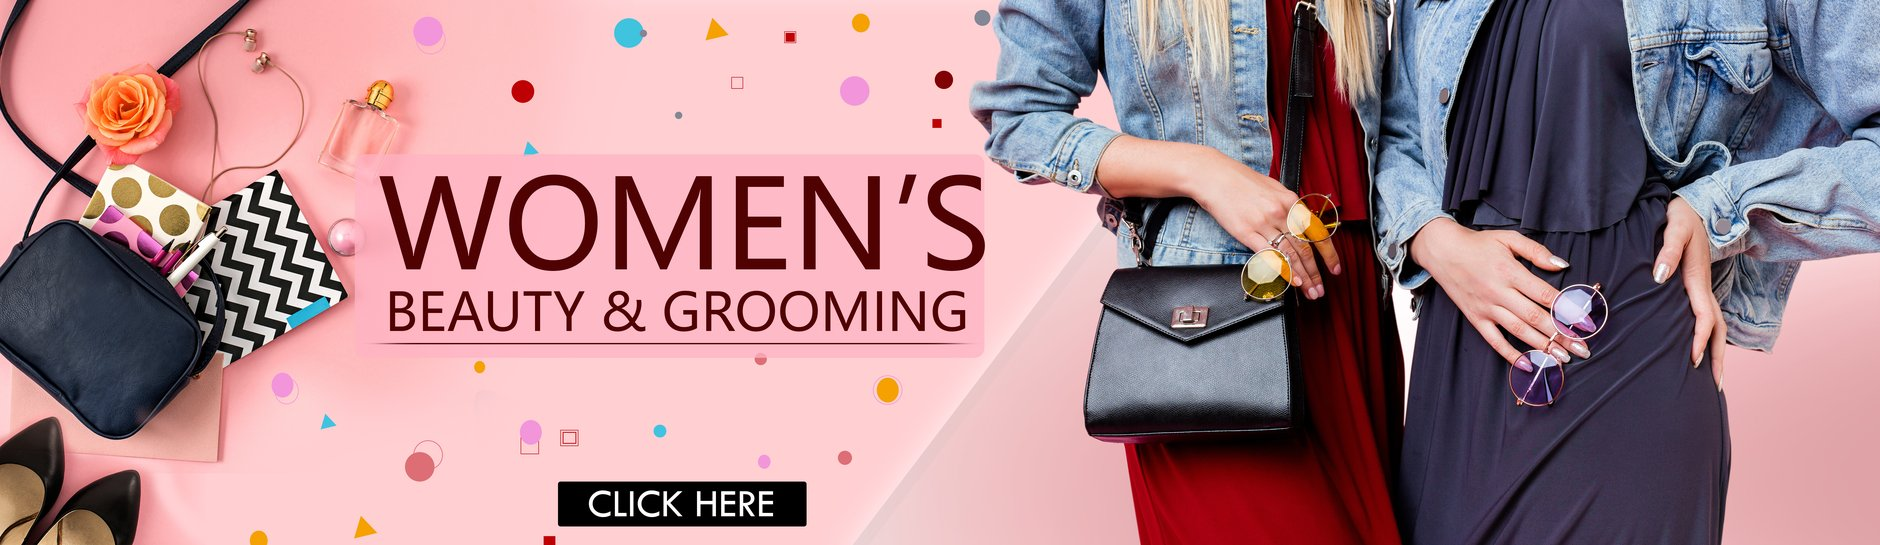 Get Women's beauty and grooming products at low and attractive prices right at your doorstep only at Getit.qa  | Free cash- card on delivery